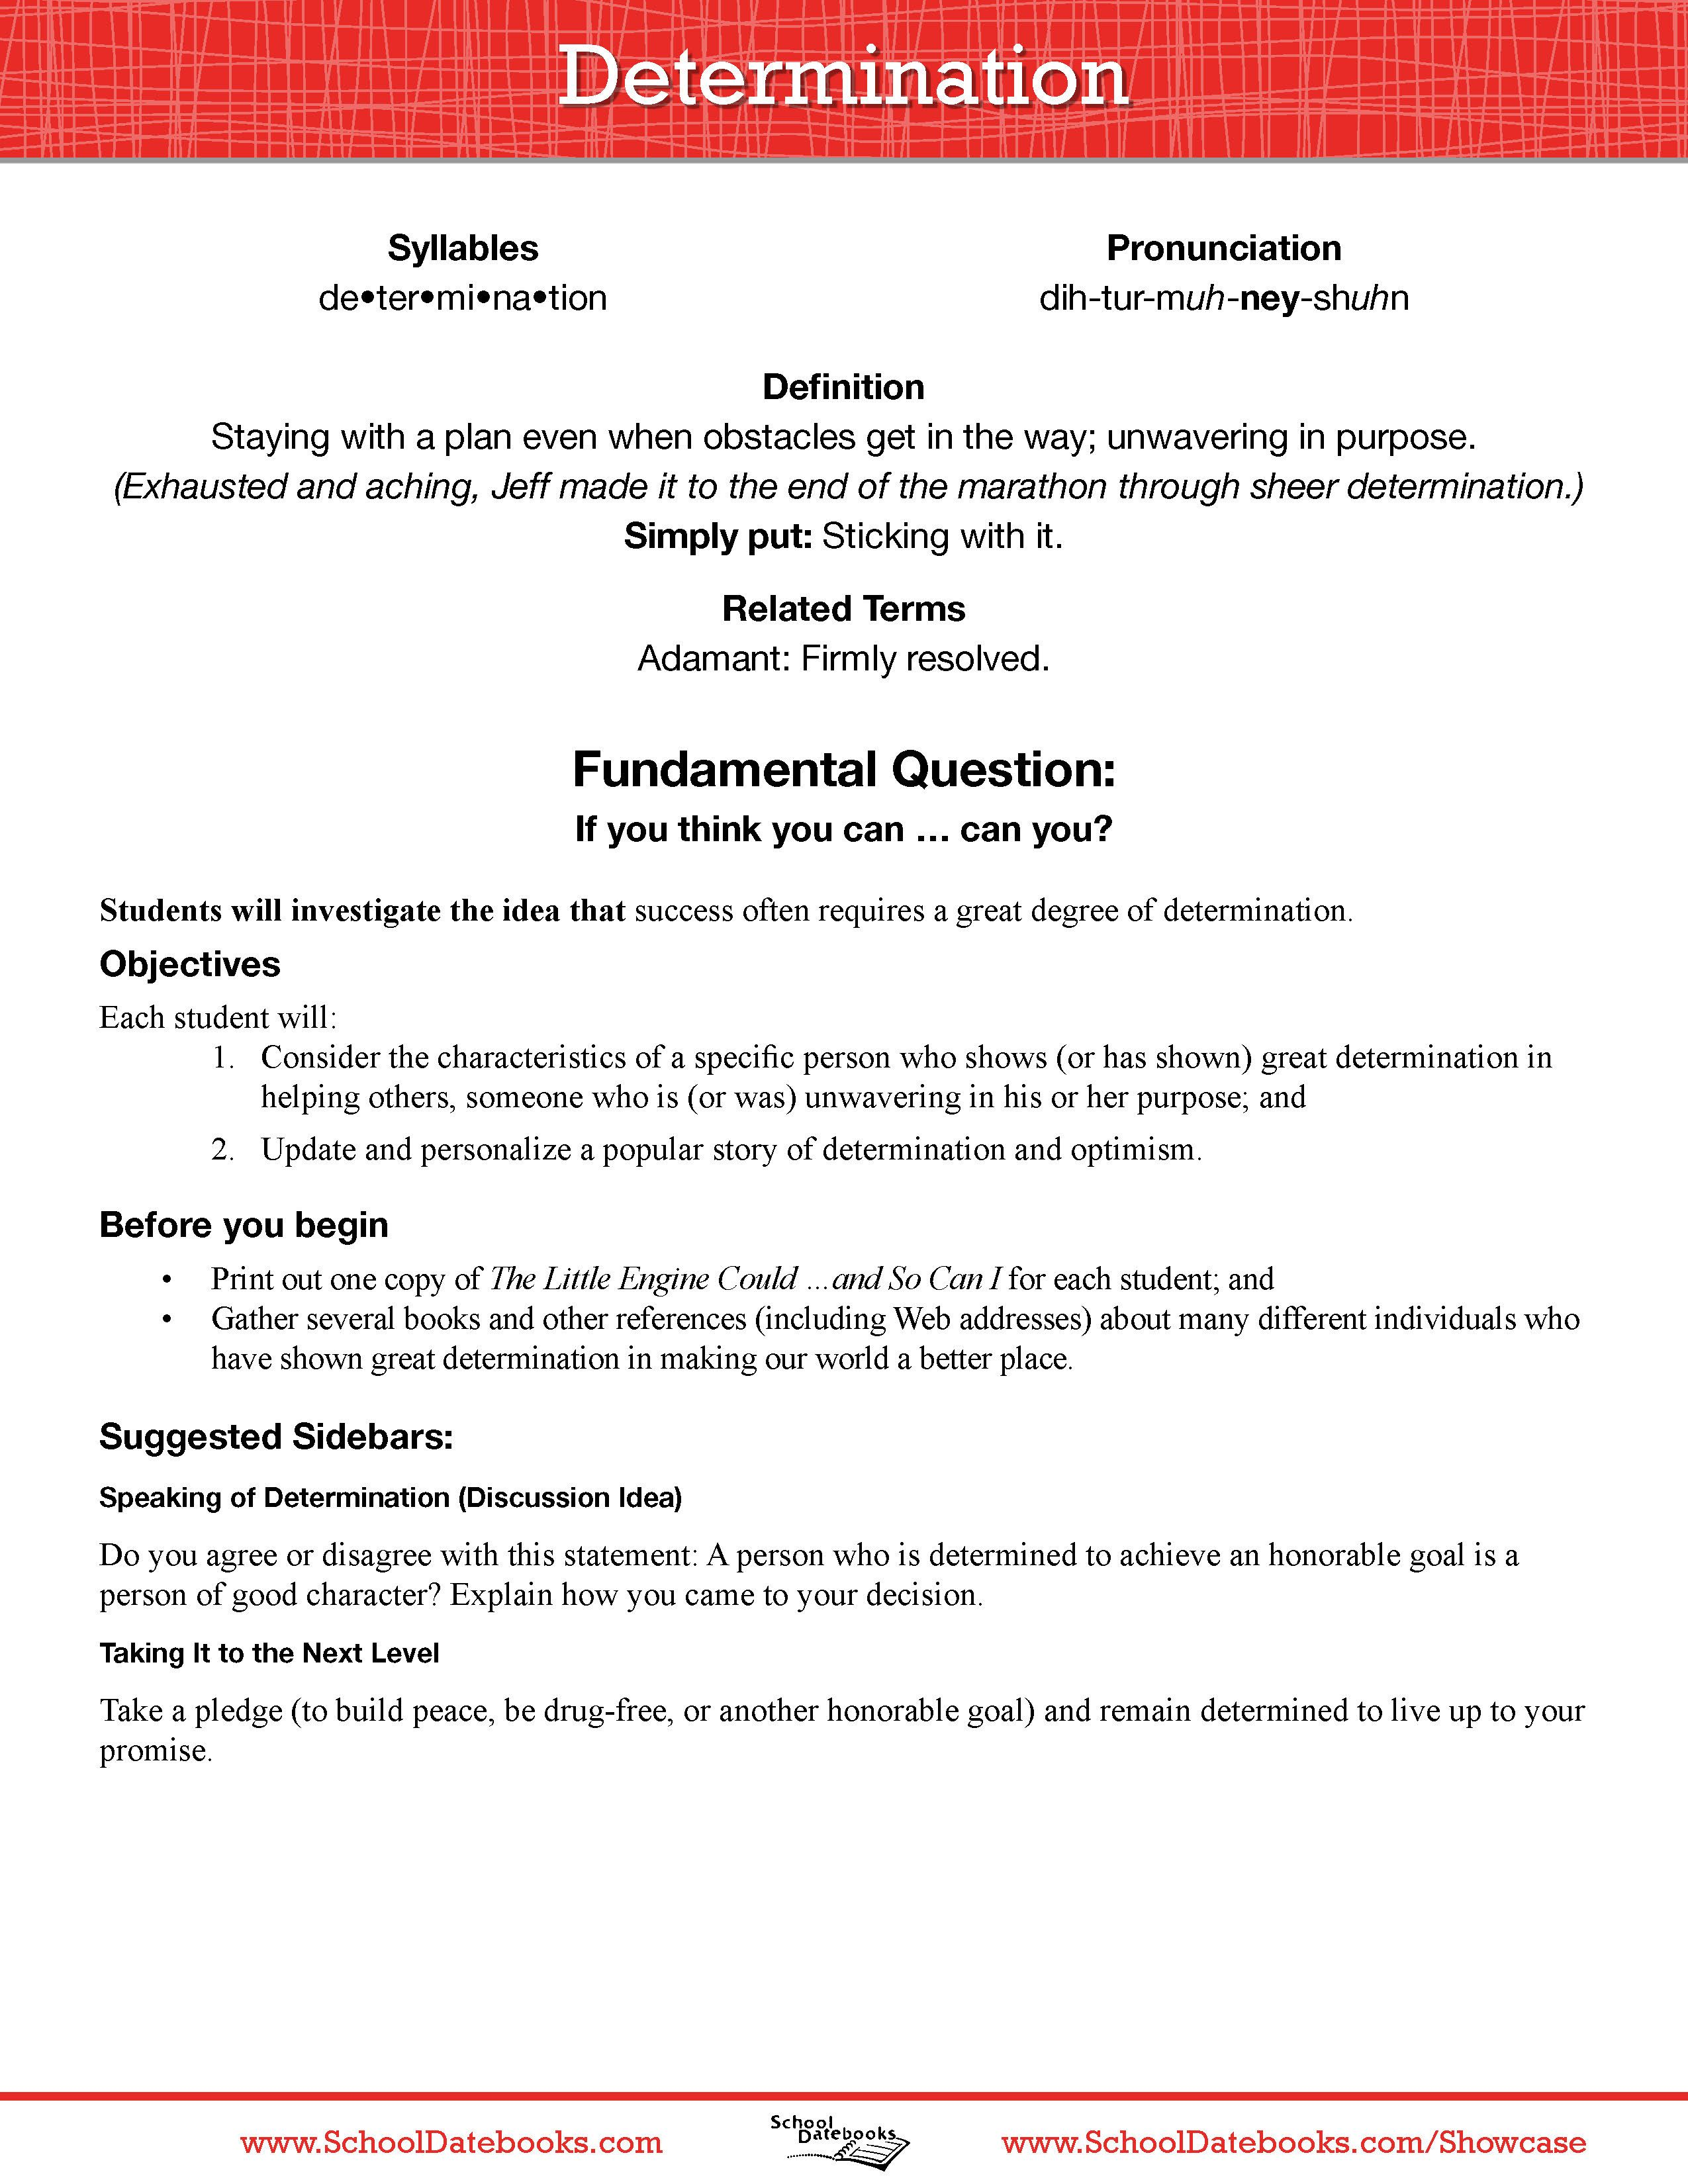 Worksheets Character Counts Worksheets determination character lesson plan free downloadable 52 total